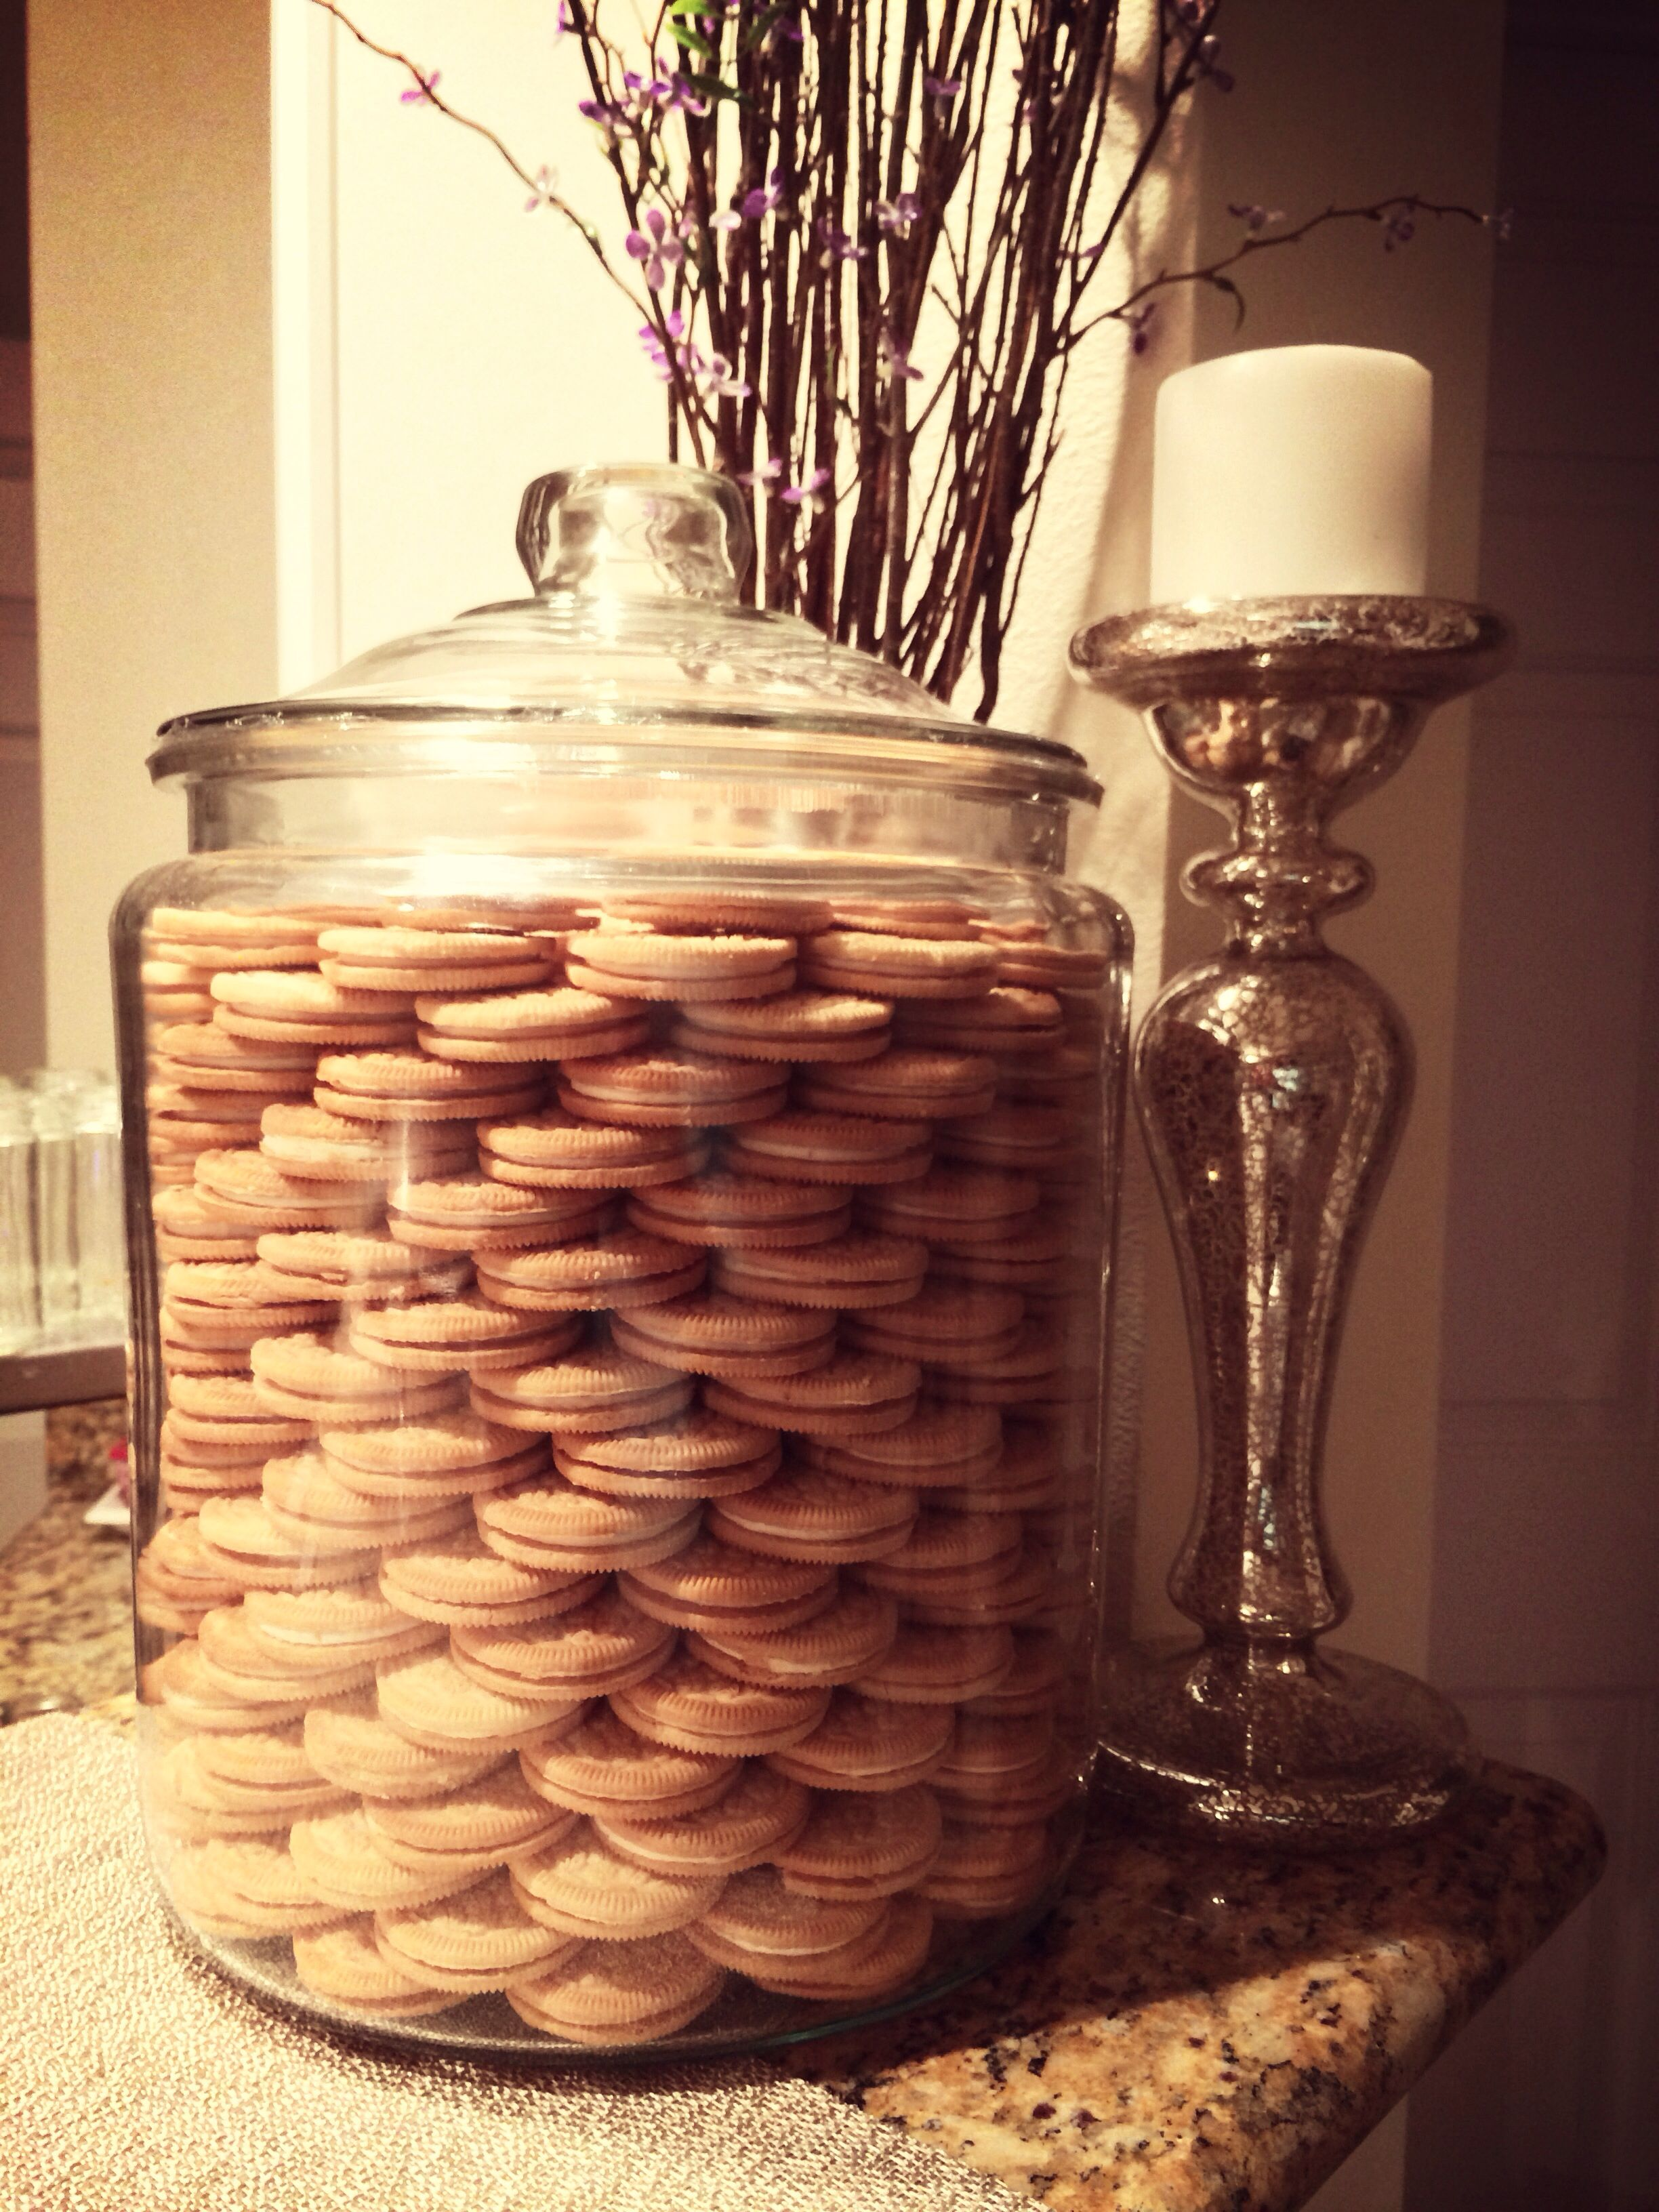 Khloe Kardashian Cookie Jar Gorgeous My Khloe Kardashian Inspired Cookie Jar 3  Pretty Diys  Pinterest Decorating Inspiration